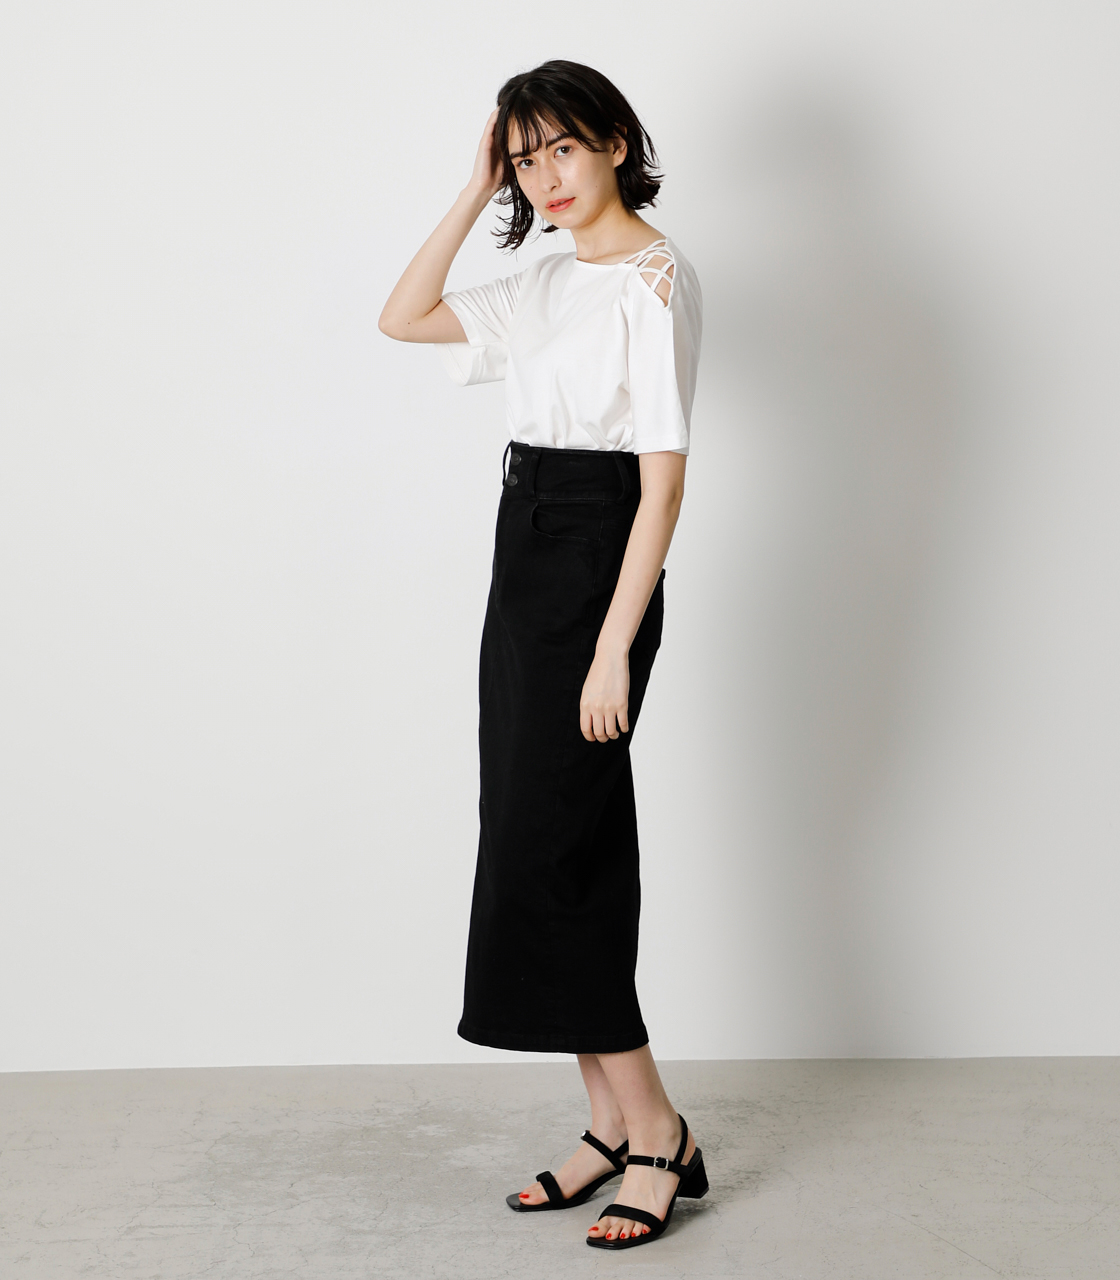 SHOULDER LACE UP TOPS/ショルダーレースアップトップス 詳細画像 O/WHT 3